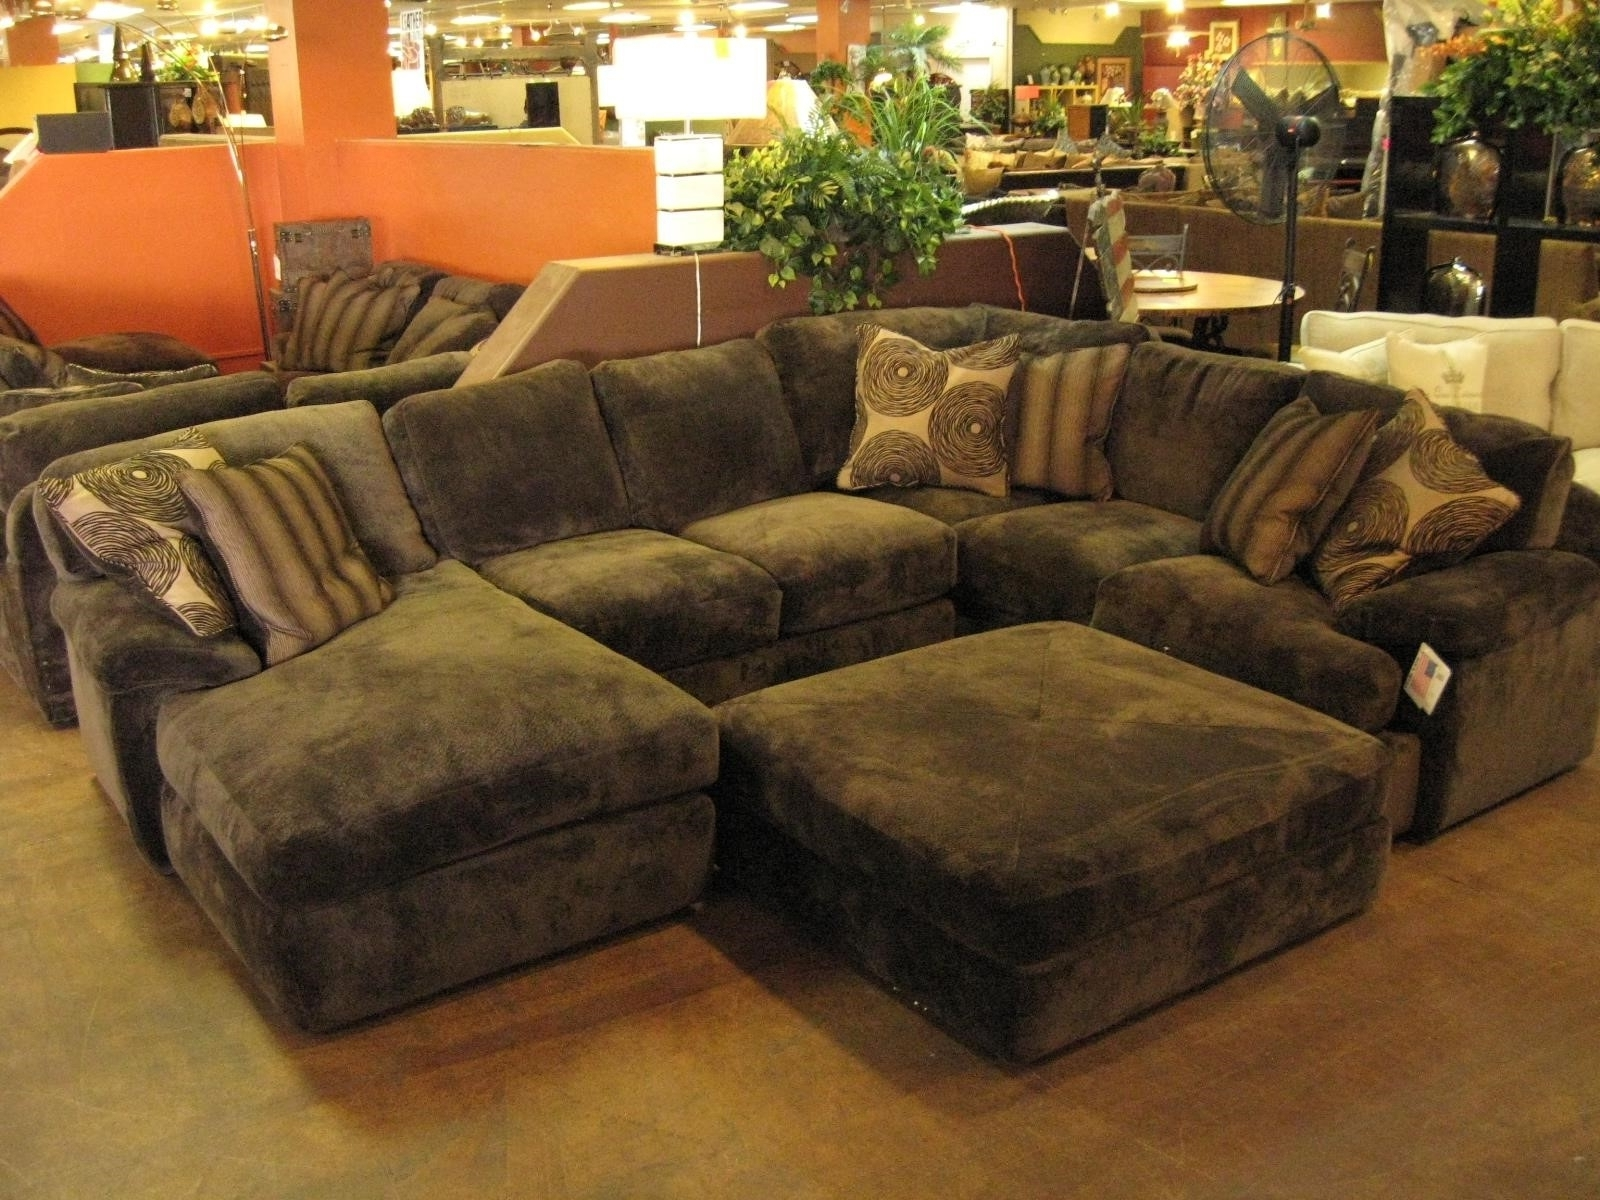 Widely Used Deep Sectional Sofa With Chaise – Visionexchange (View 3 of 15)